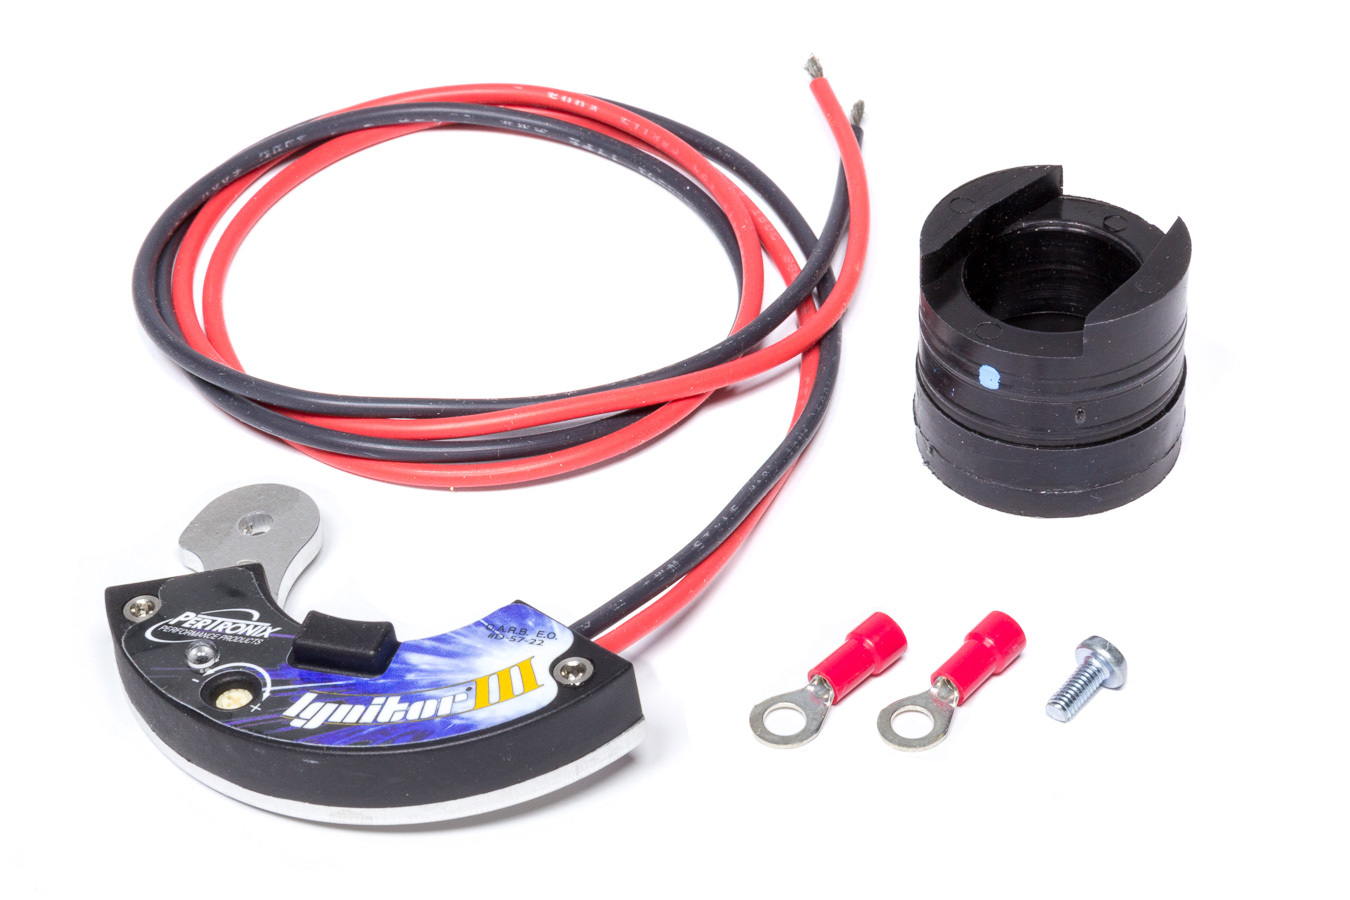 Pertronix Ignition D7500702 Ignition Control Module, Ignitor III, Pertronix L/H Rotation V8 Billet Distributors, Each